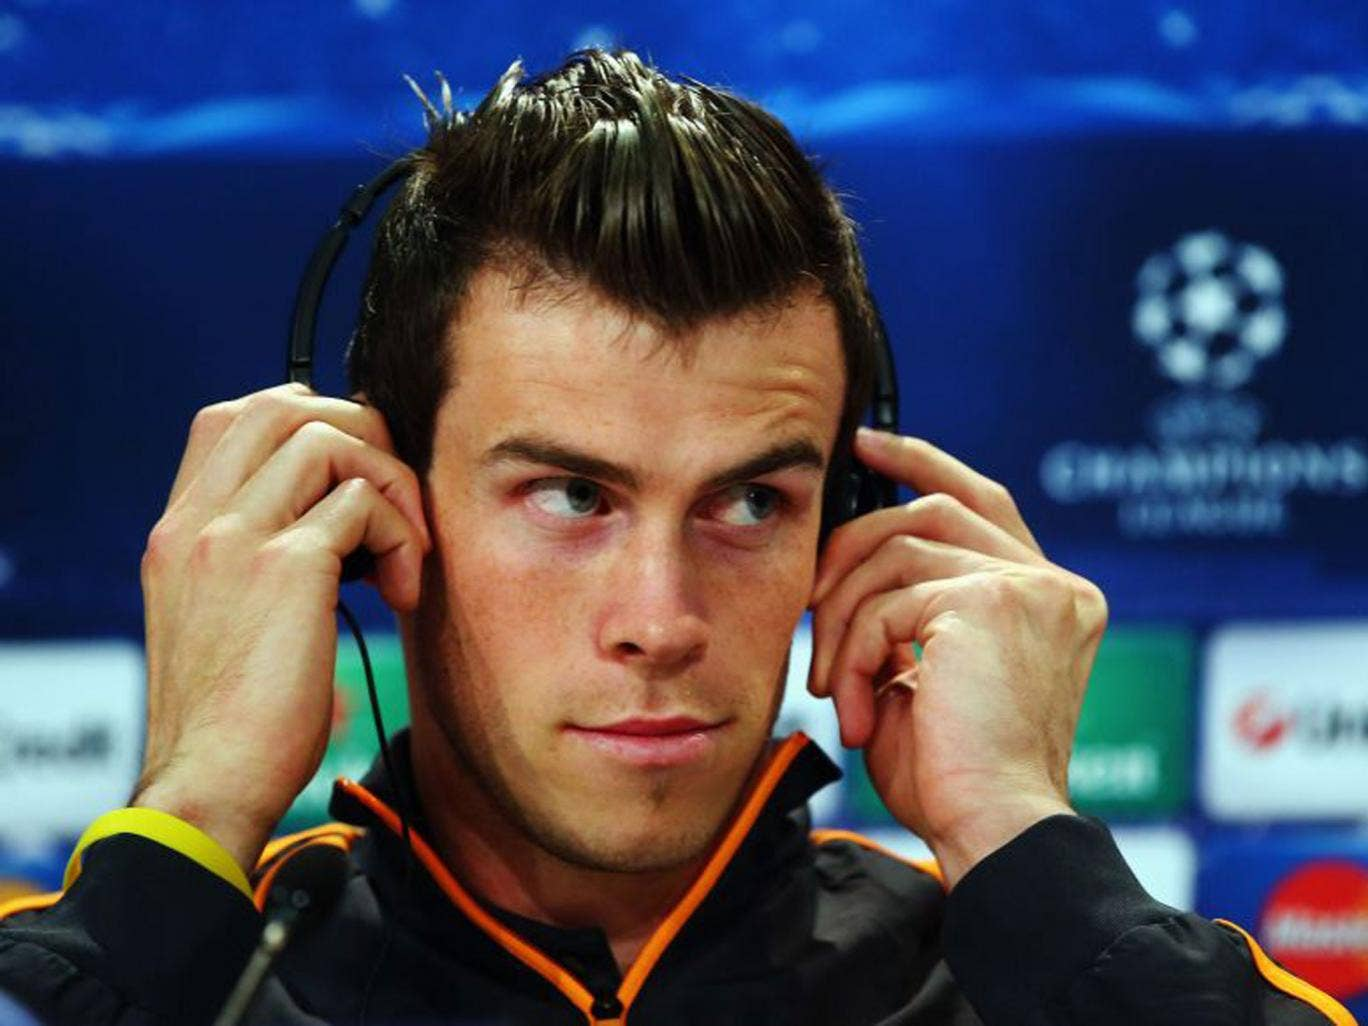 Real Madrid's Gareth Bale keeps cool in front of the press at the Allianz Arena yesterday